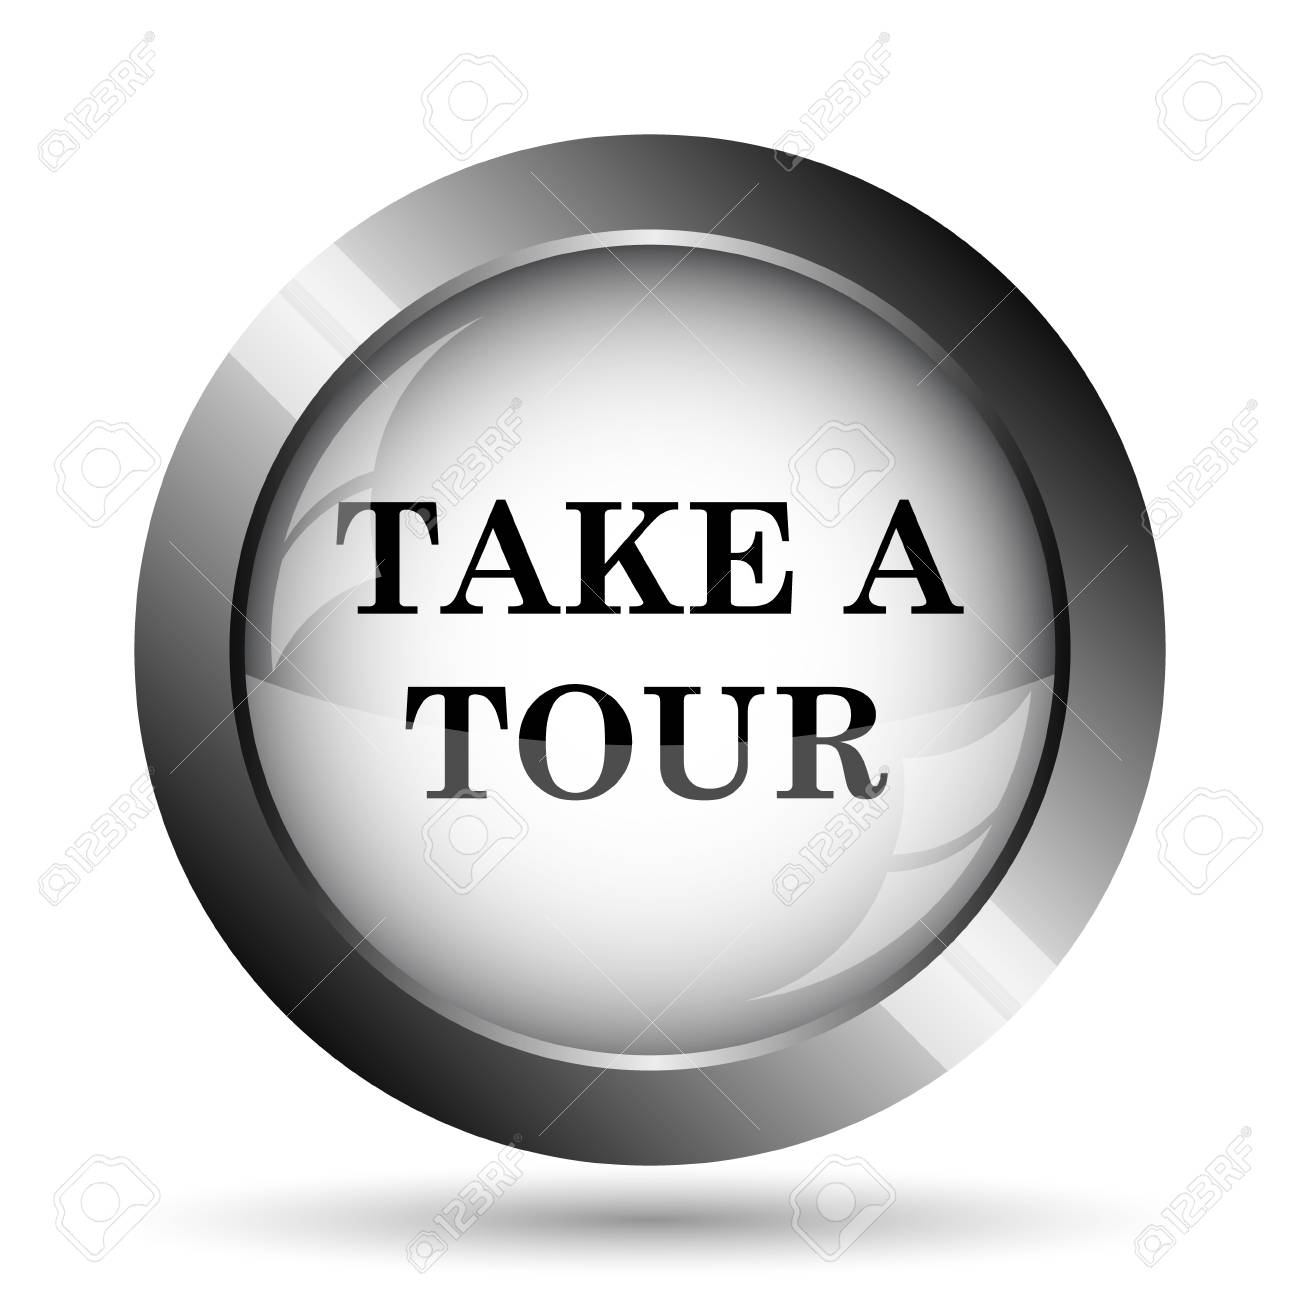 Stock Photo - Take a tour icon. Take a tour website button on white background.